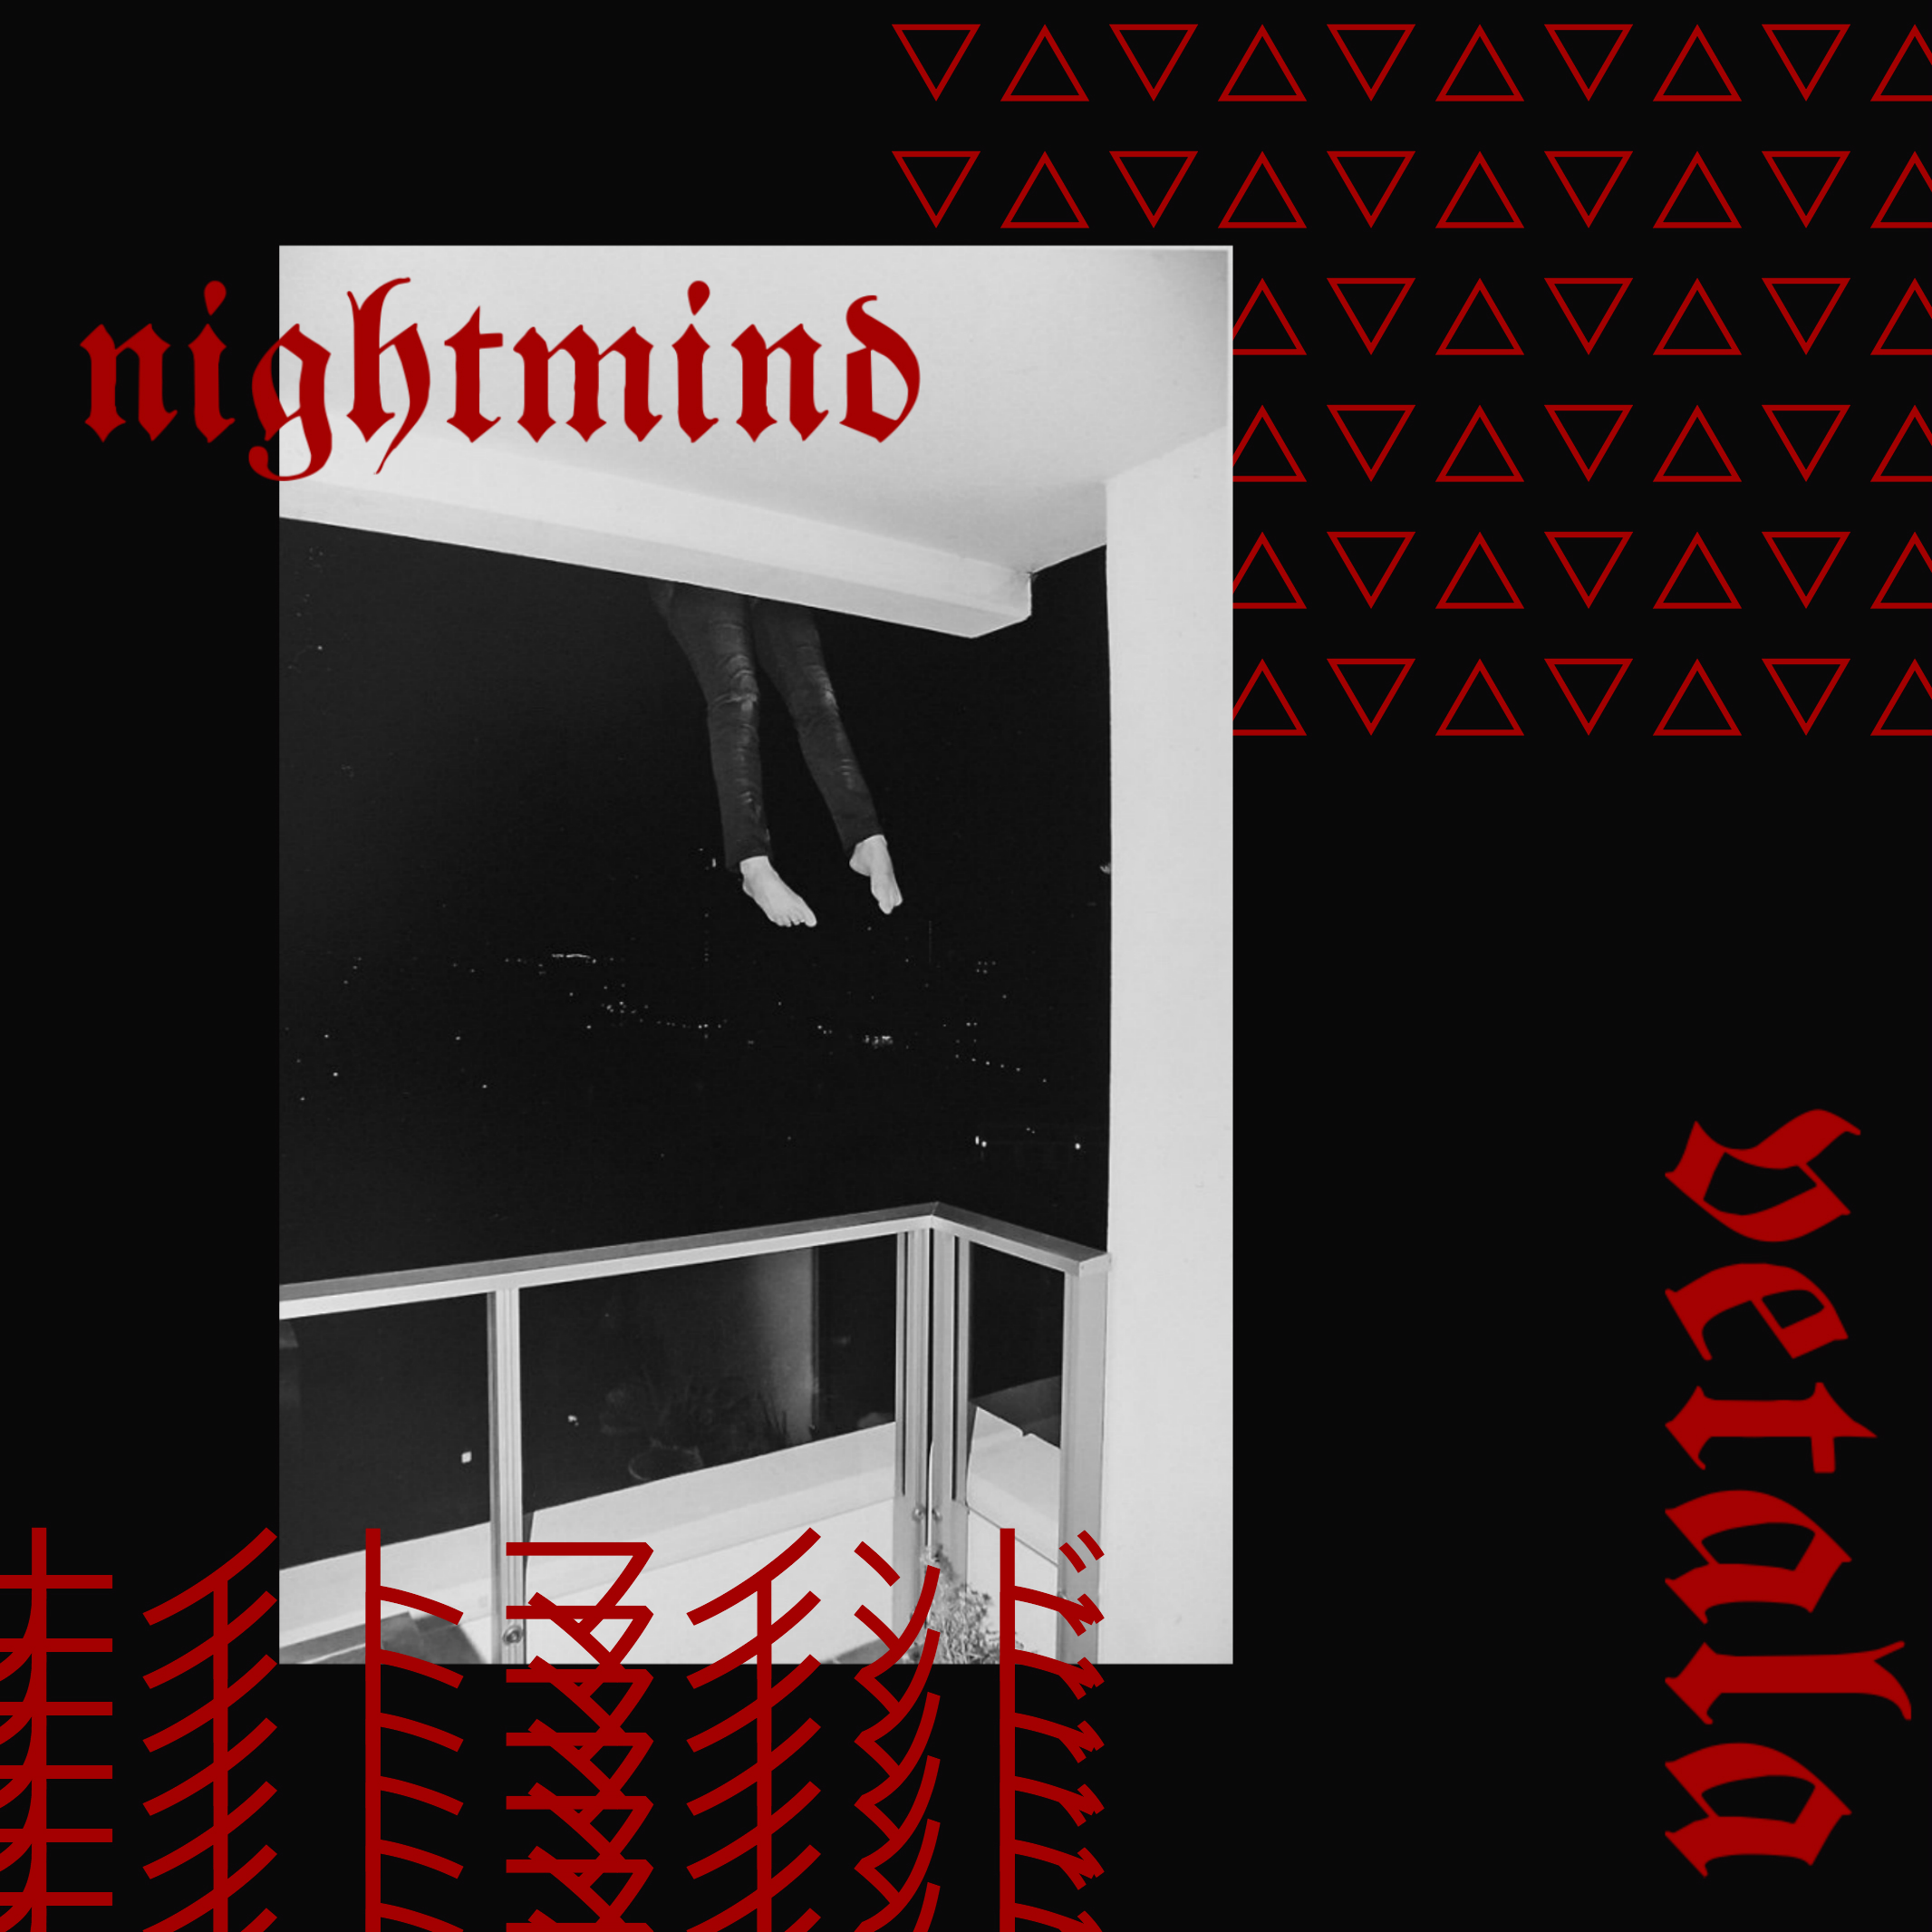 nightmind - stream on your favorite streaming service